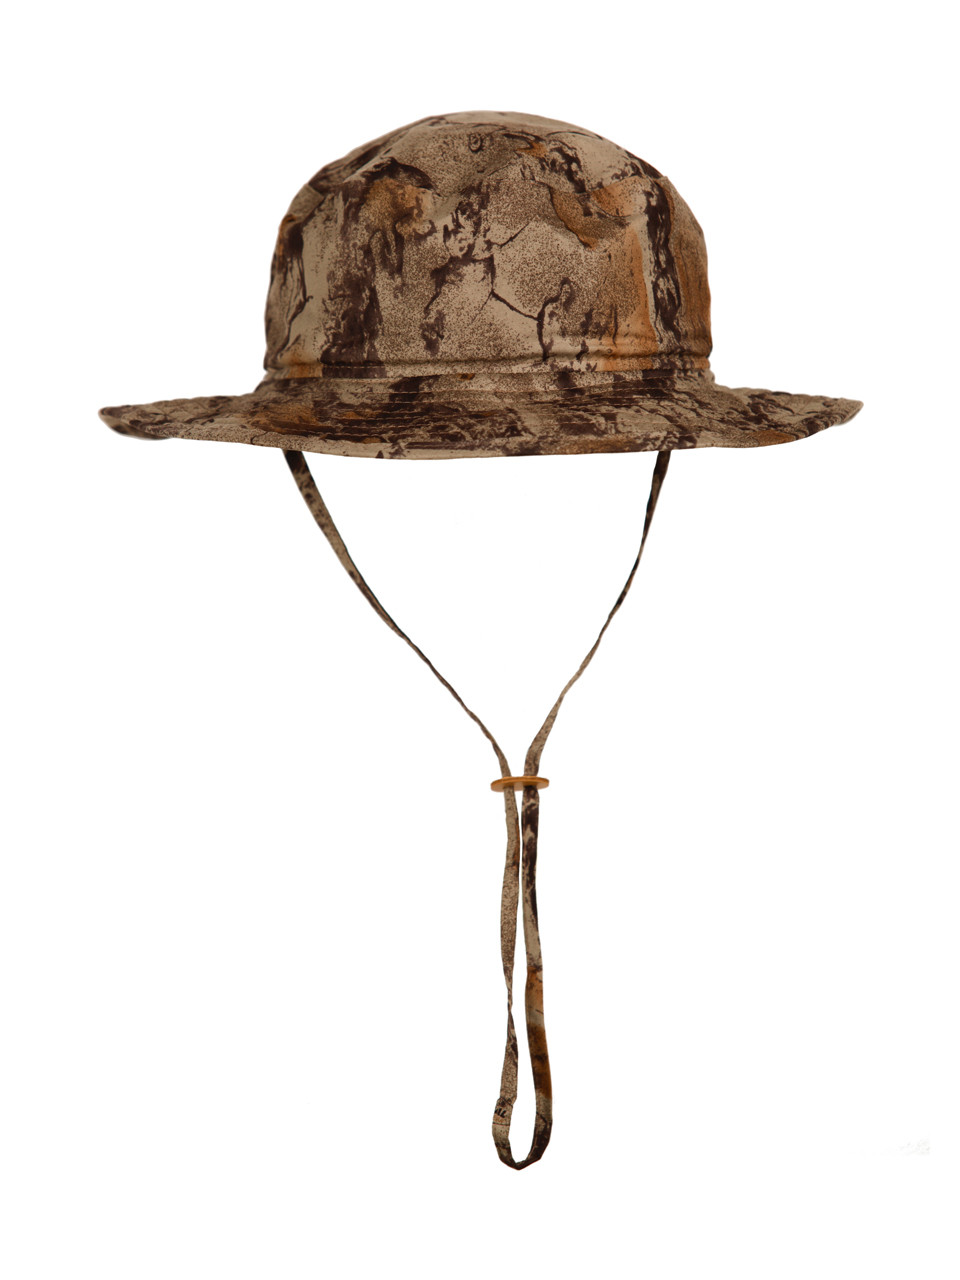 Natural Water Resistant Boonie Hat - Waterfowl Hunting Gear ... 7423984d127